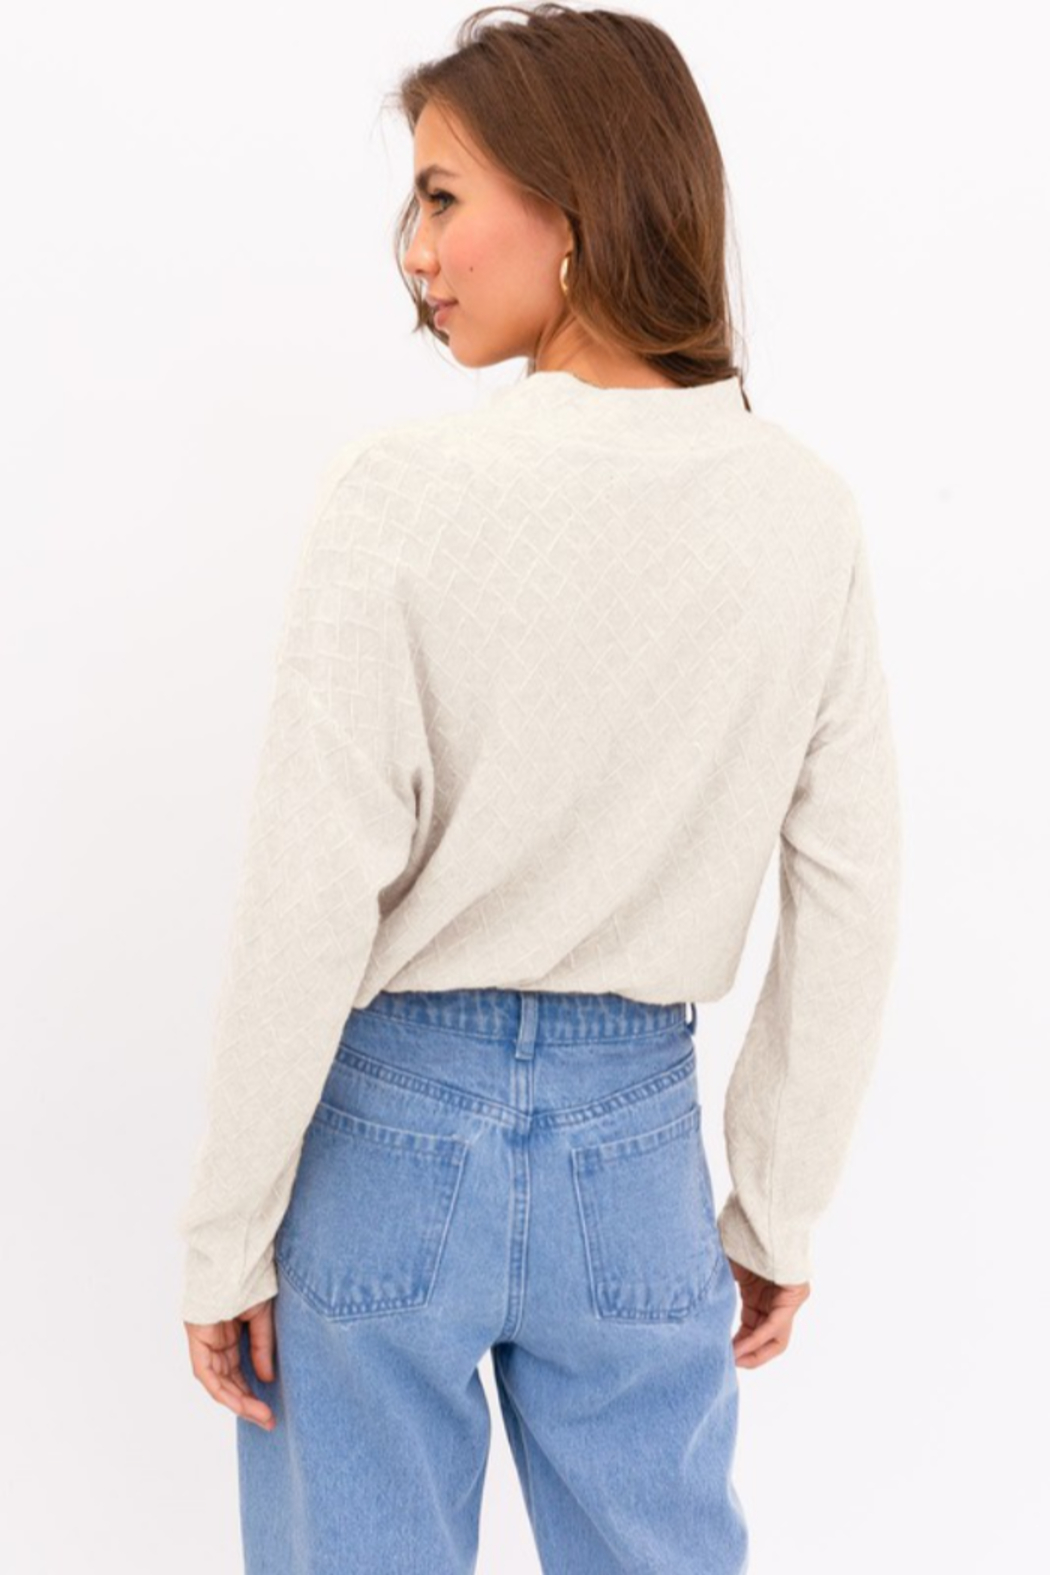 Le Lis Long Sleeve Mock Neck Texture Knit Top - Front Full Image